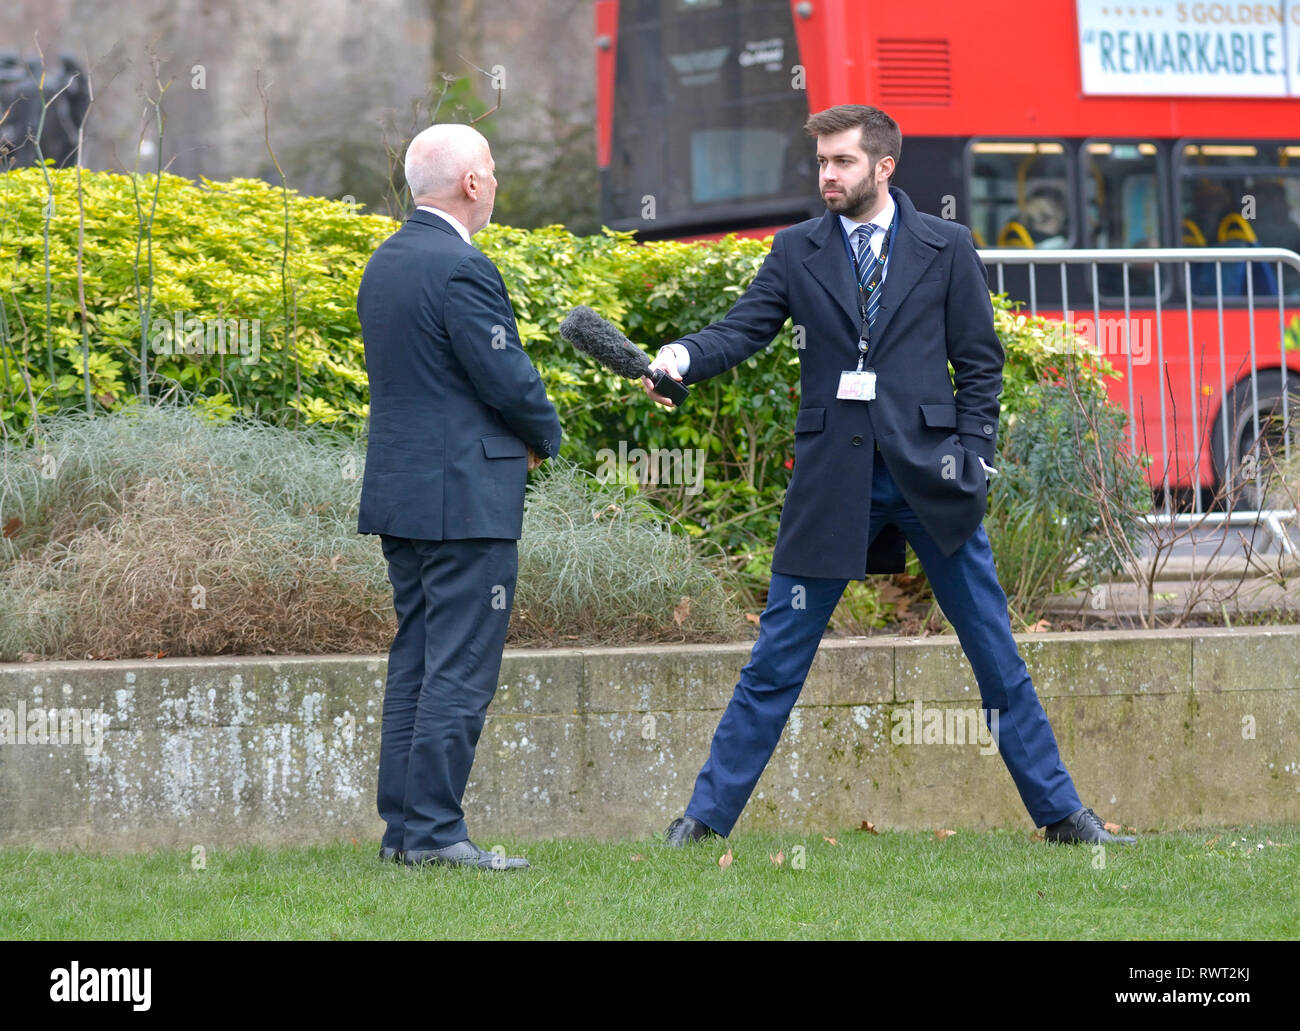 Joe Pike - ITV Political Correspondent for 'The North' - interviewing someone shorter than himself on College Green, Westminster, London, UK. Stock Photo